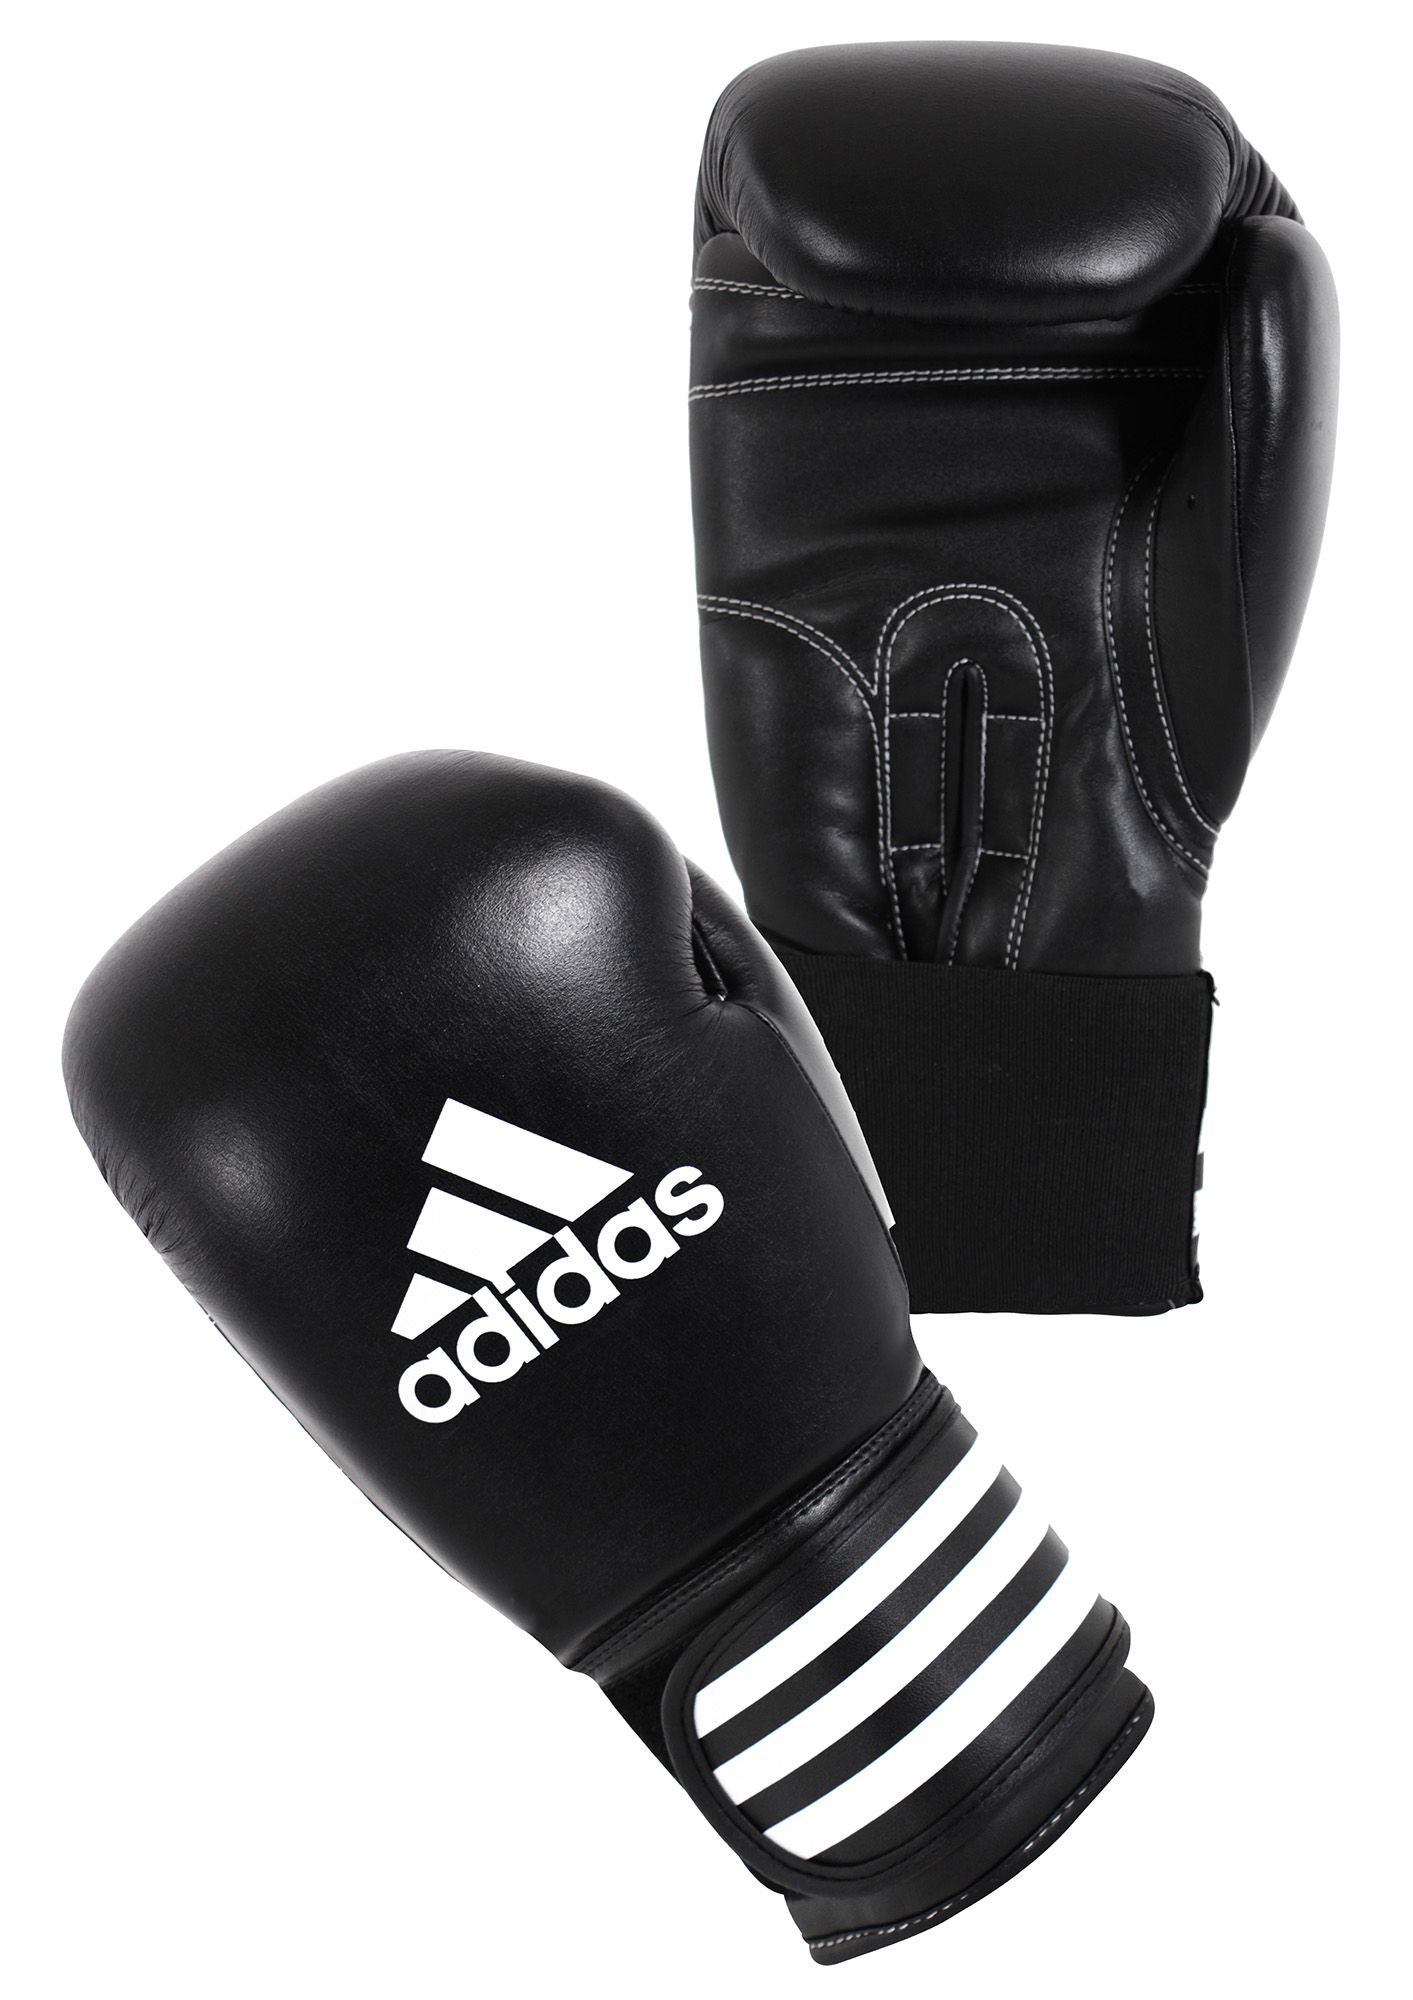 ADIDAS PERFORMANCE adidas Performance Boxhandschuhe, »Performer«